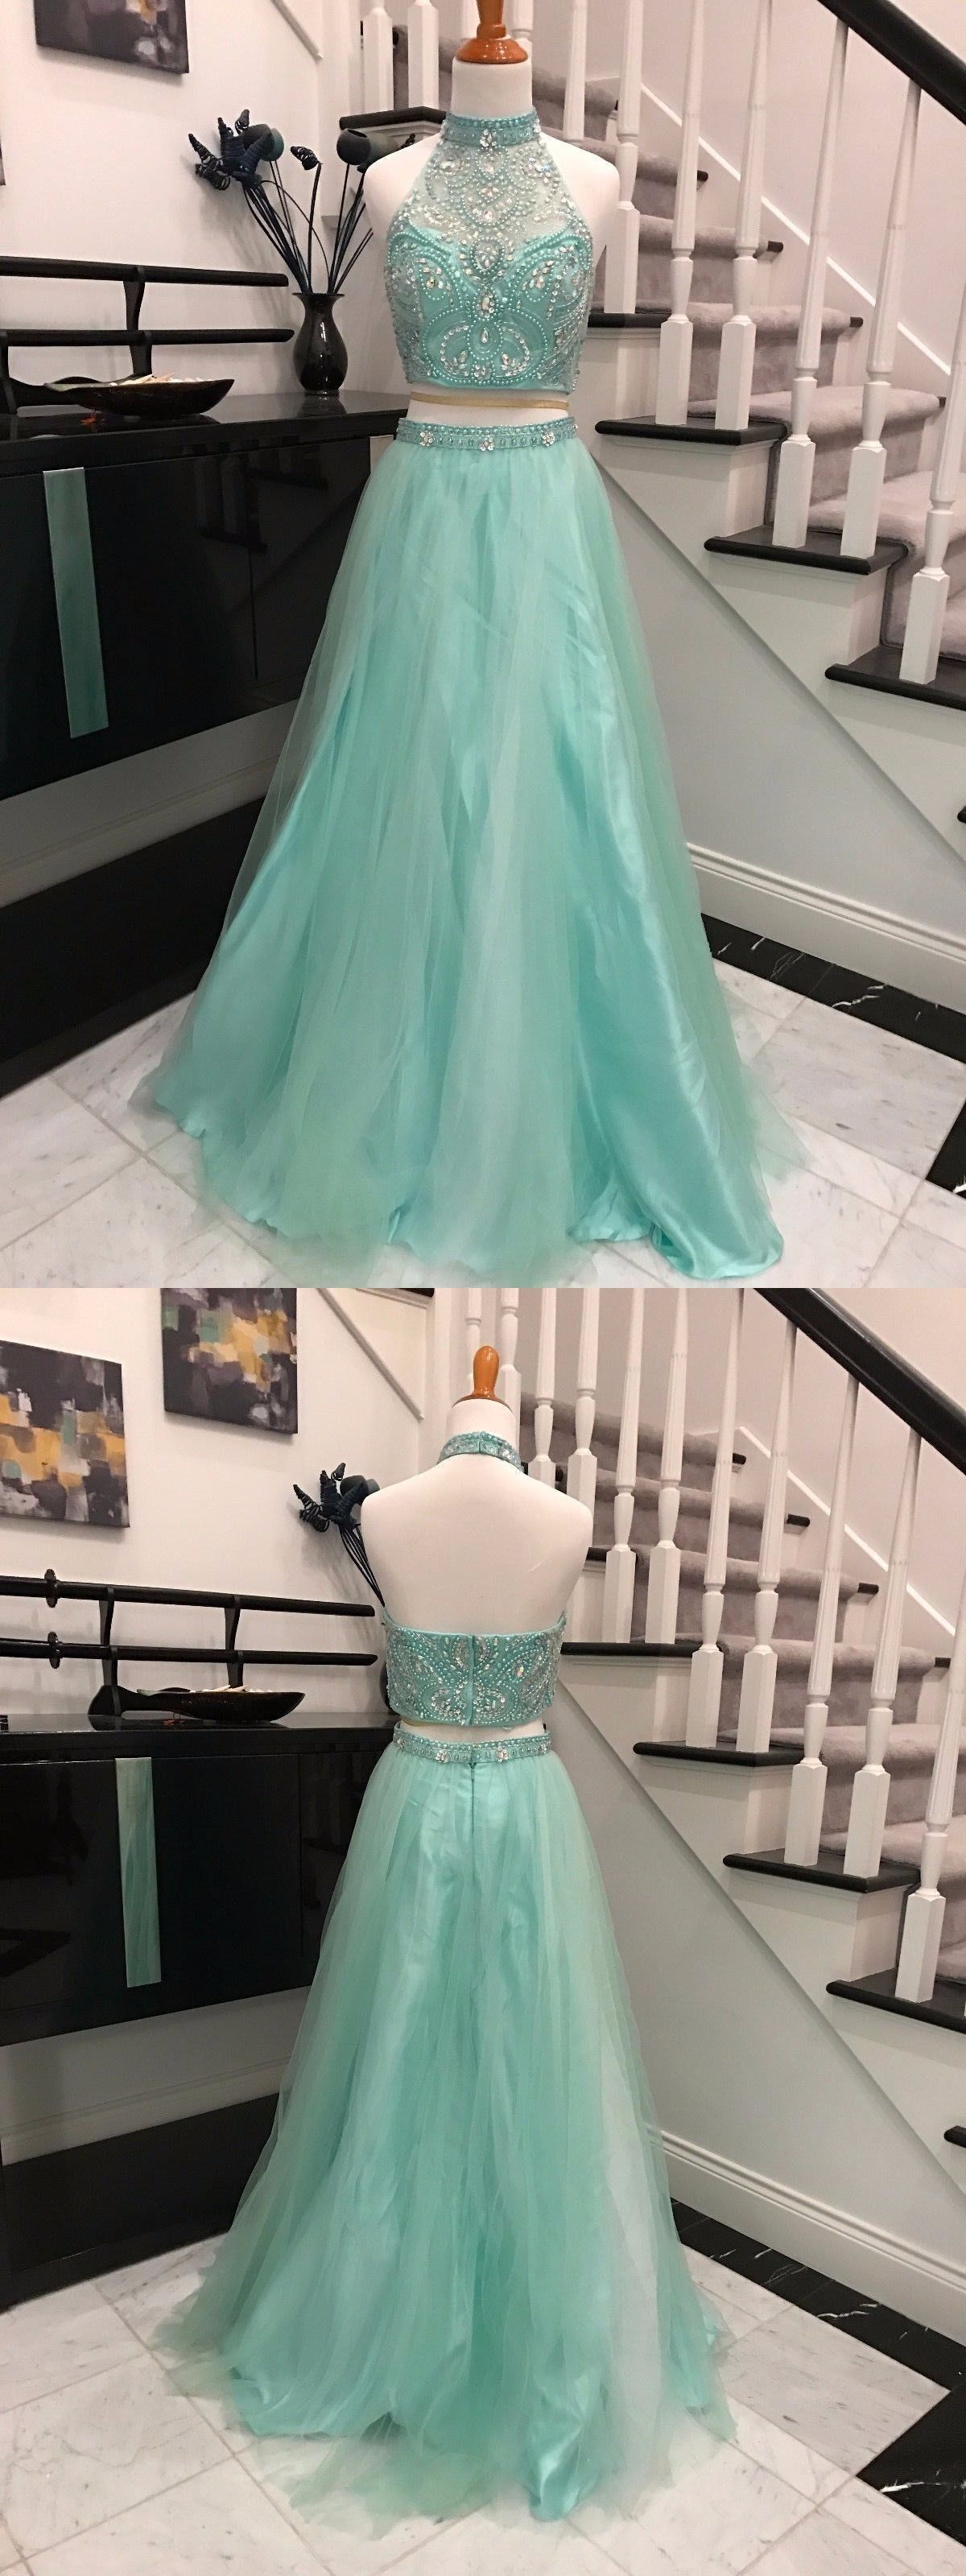 prom dresses,2017 prom dresses,2 pieces prom dresses,mint 2 pieces ...